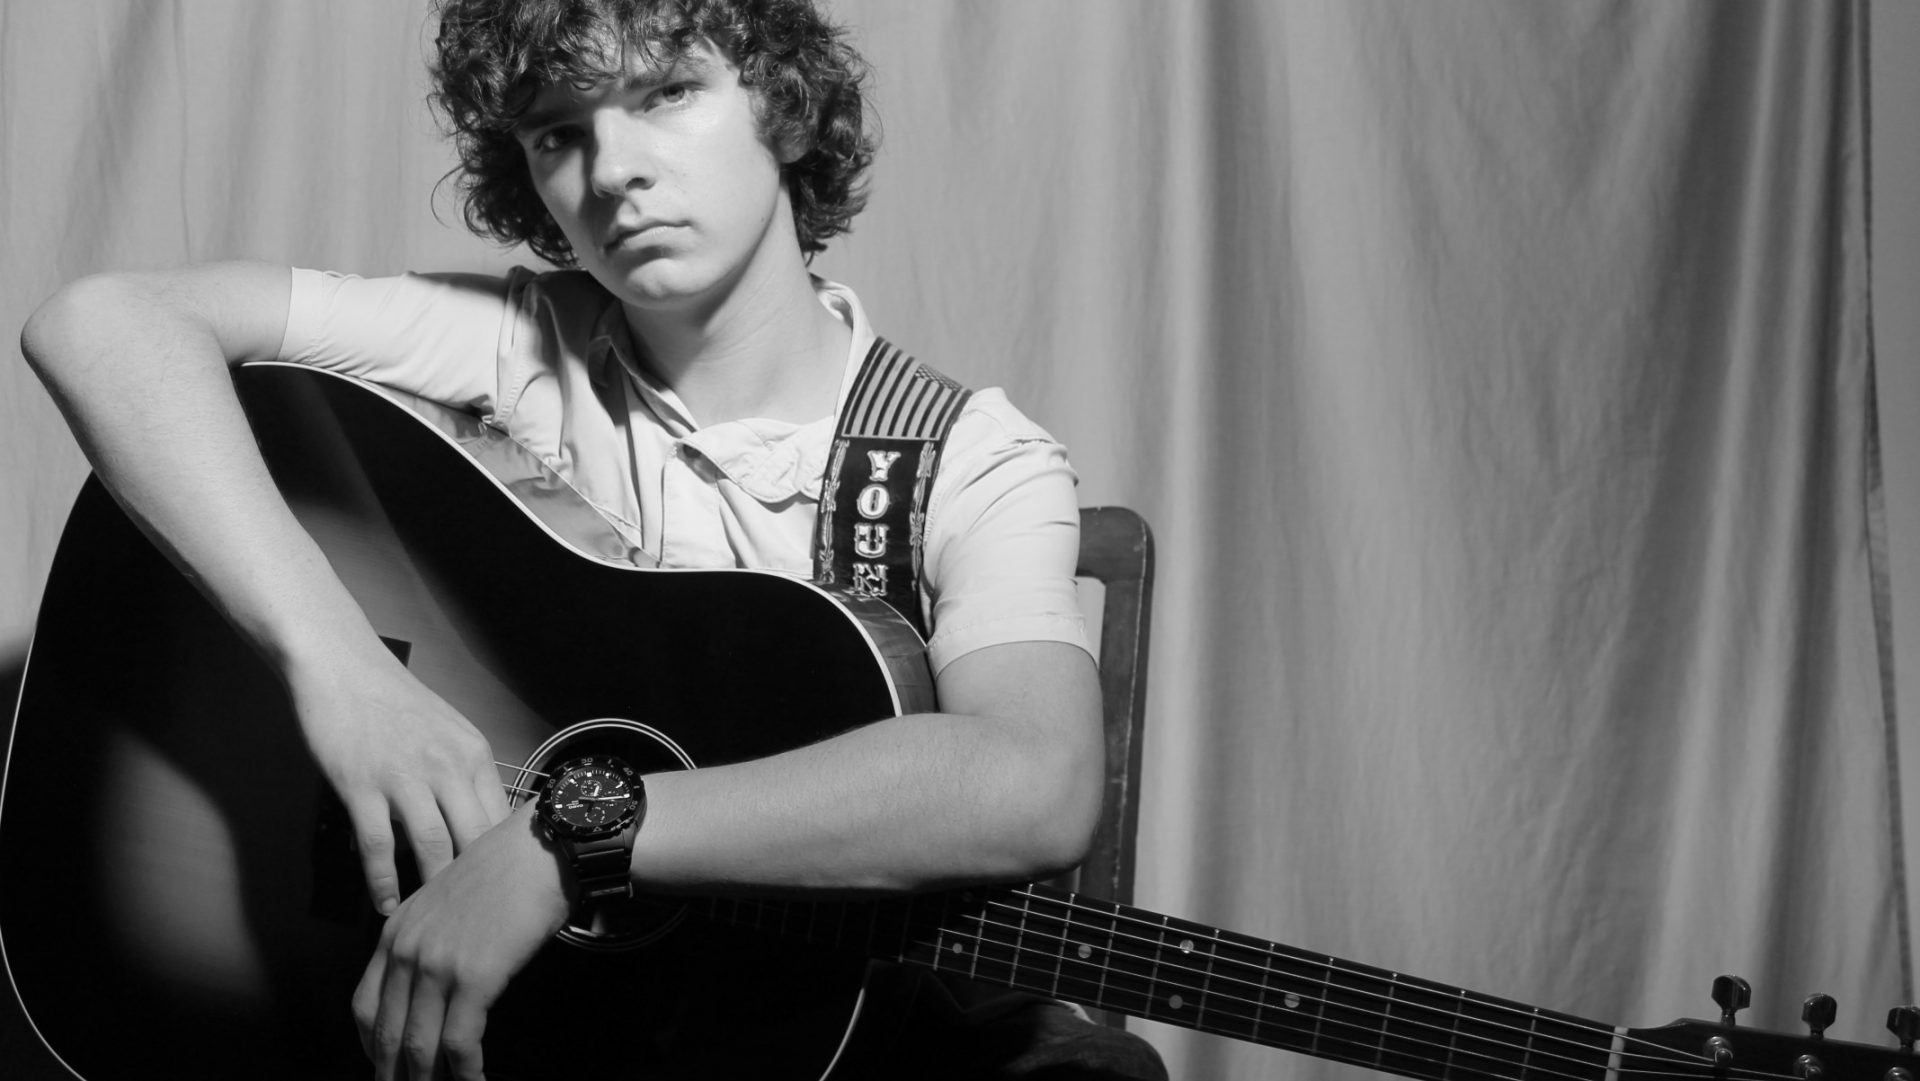 Hunter Flanagan, Georgia Country Awards – Overall Artist Of The Year – 2019 & 2020, is a country singer/songwriter based out of Carrollton Georgia, will be live at West Tubing Company!